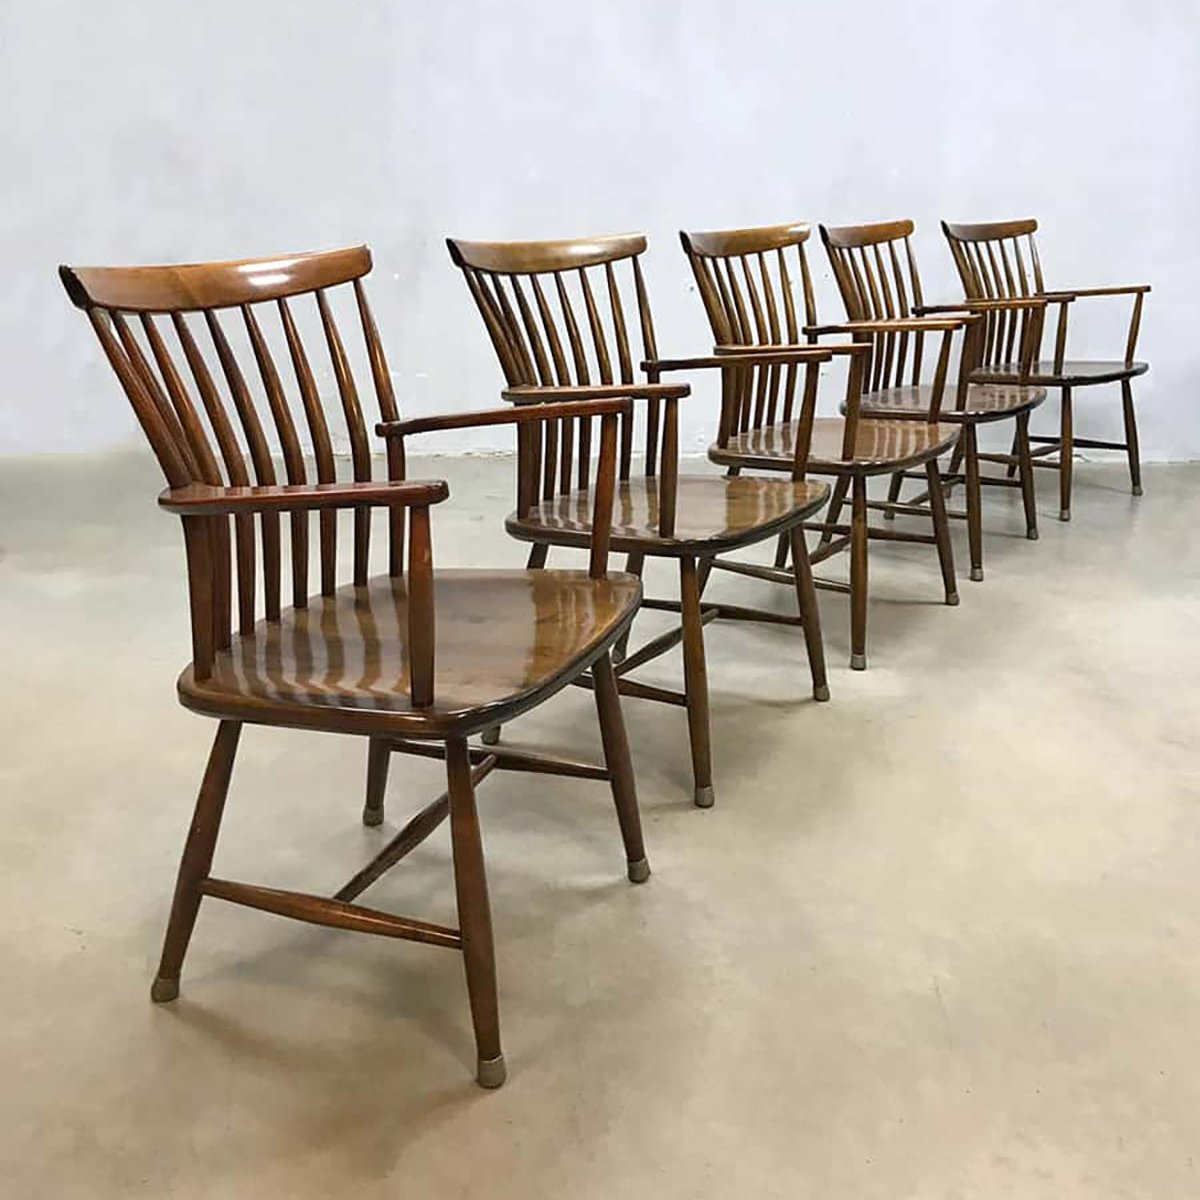 Set Of 5 Vintage Swedish Design Dining Chairs By Bengt Akerblom 96433